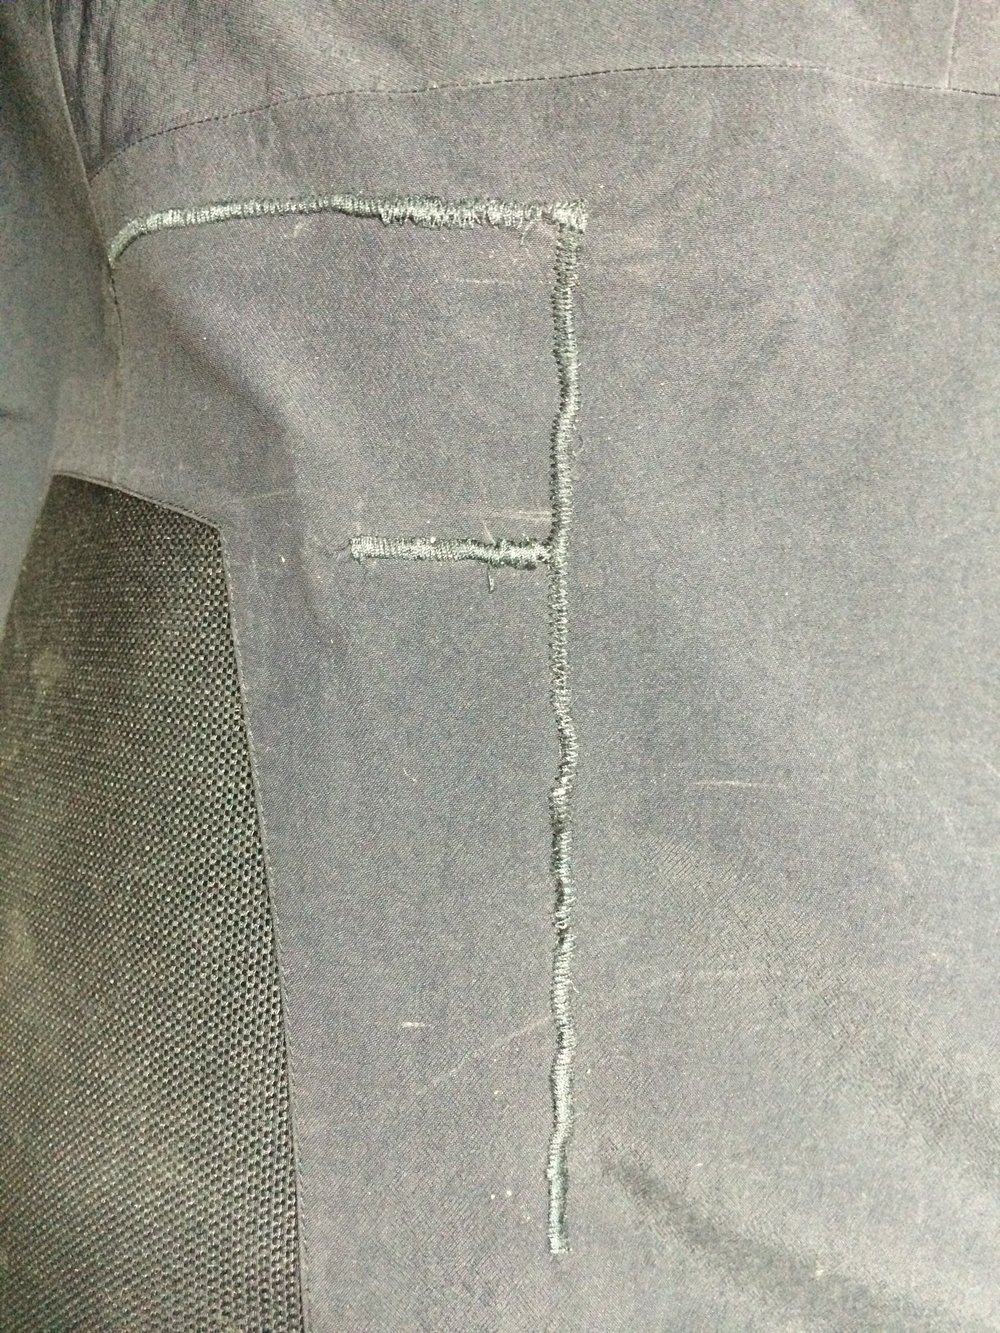 Gore-tex® pants mended after a run in with crampons.